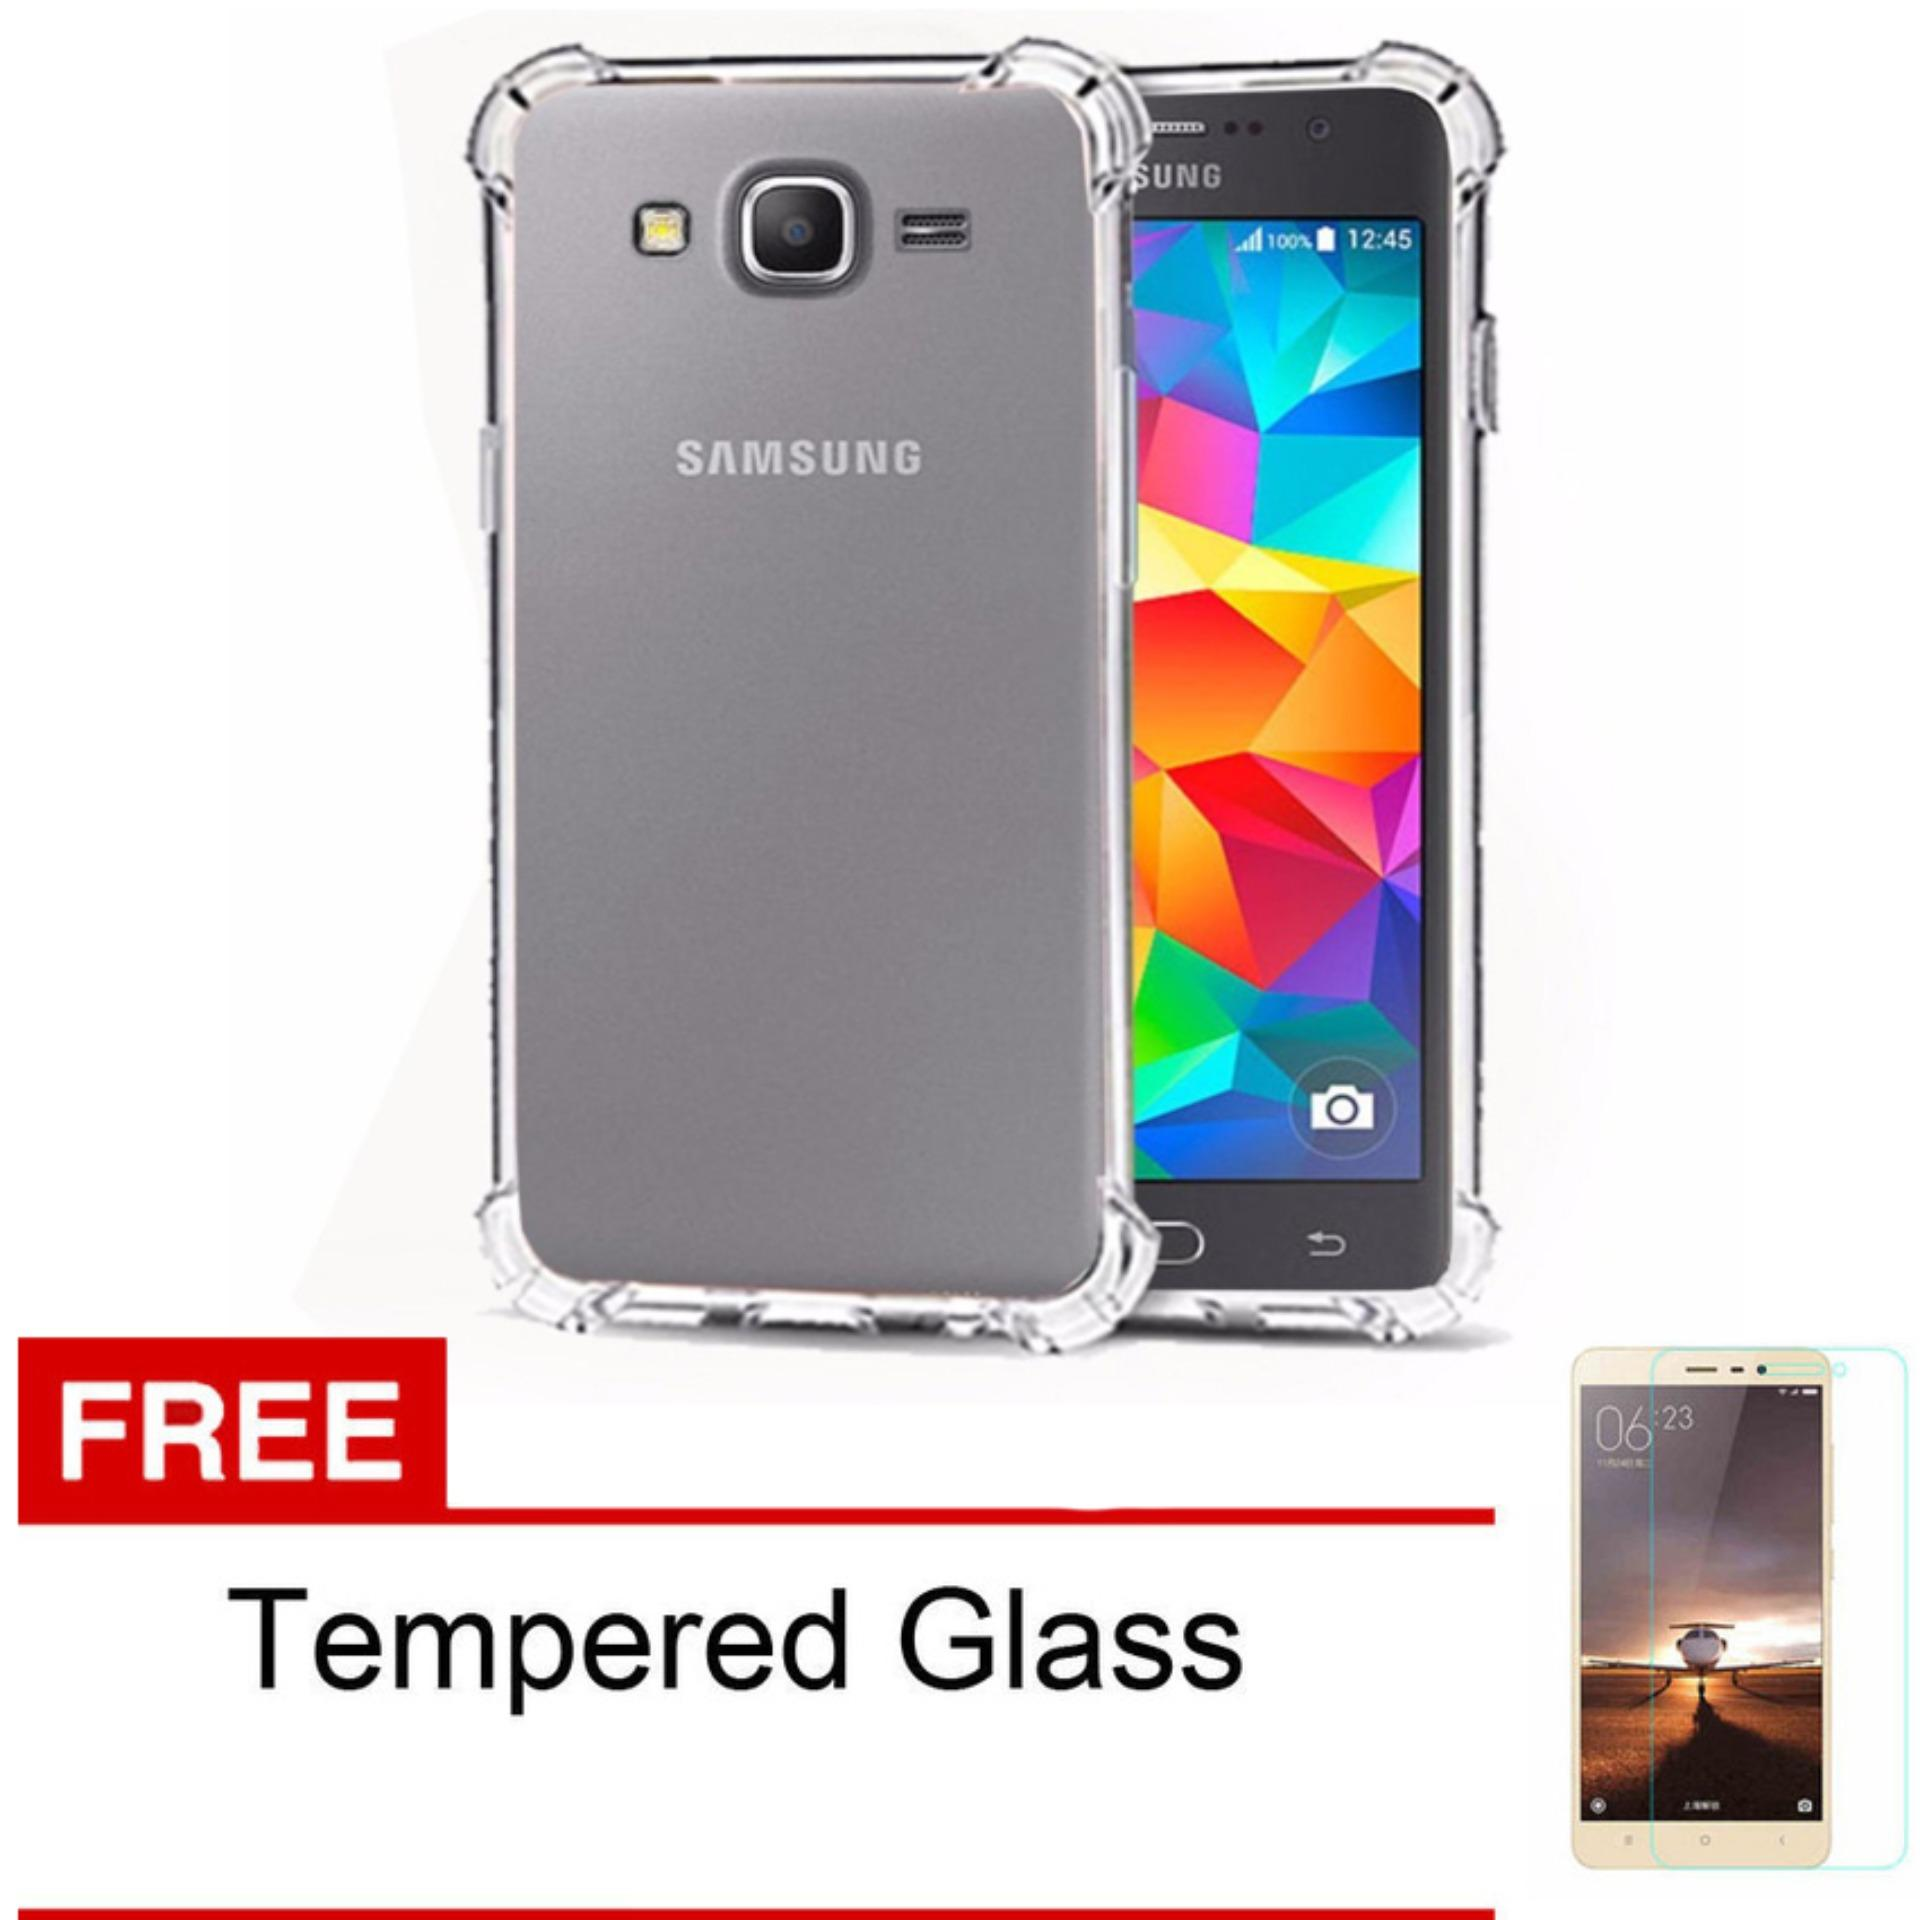 Soft Case Anti Crack / Anti Shock Case Samsung Galaxy J2 Prime Kualitas Gred A Bonus Tempered Glass